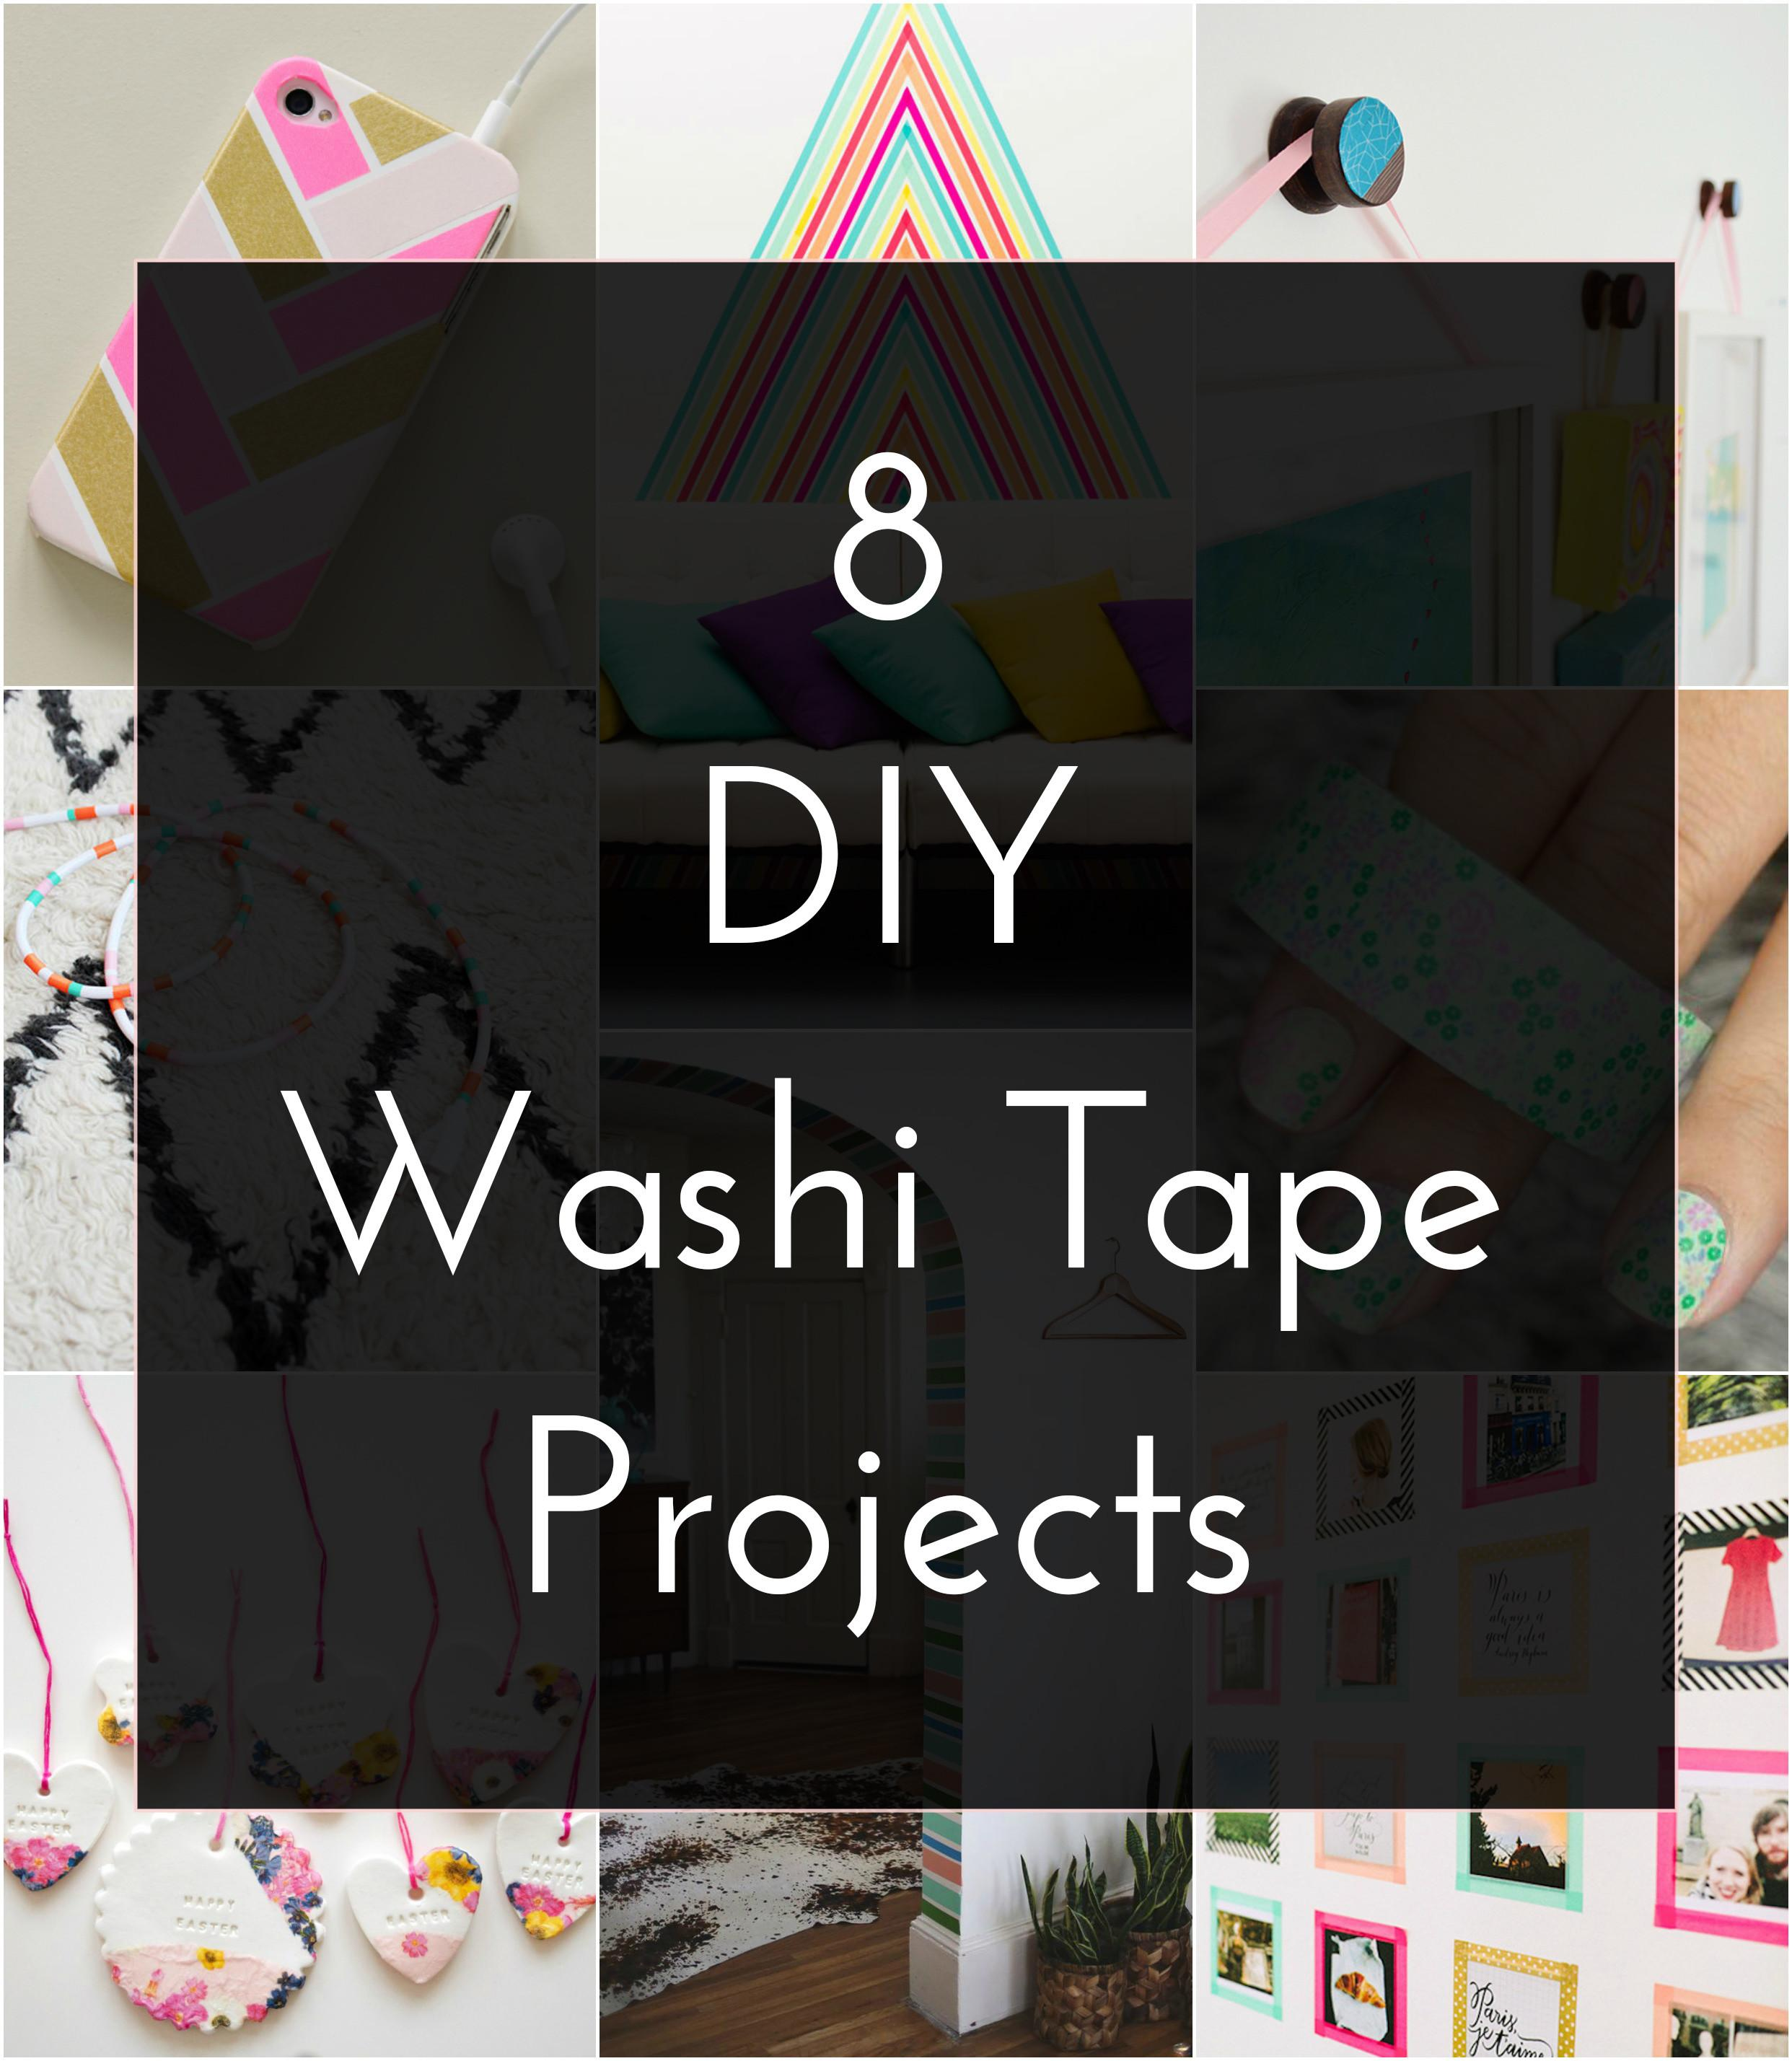 Diy Washi Tape Projects Crafted Life